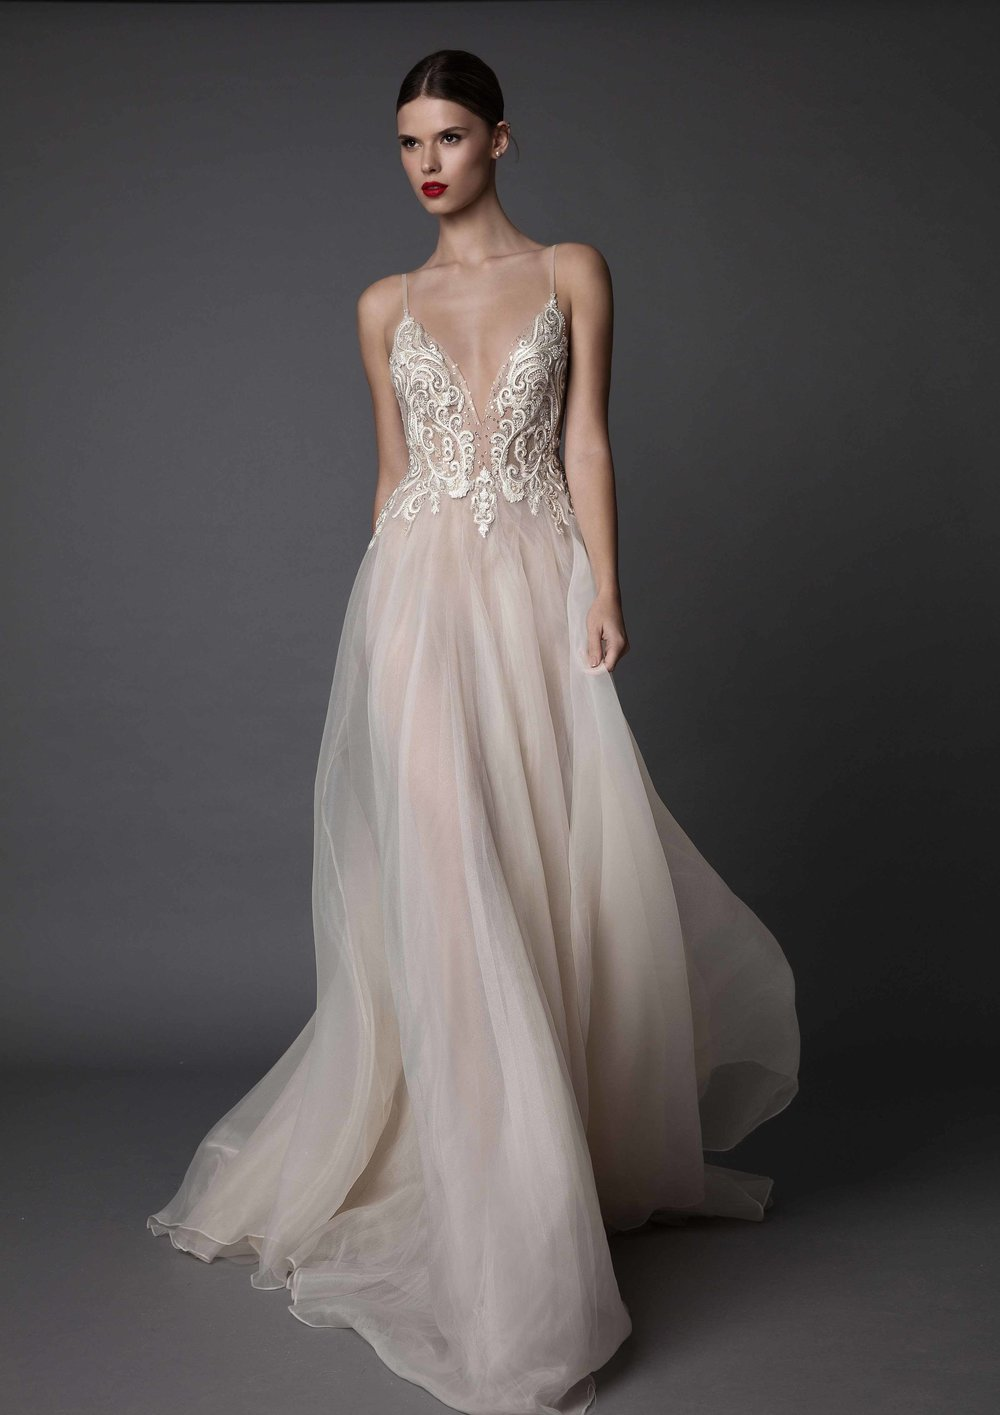 MUSE BY BERTA - PRICE RANGE: $5,400 - $6,700